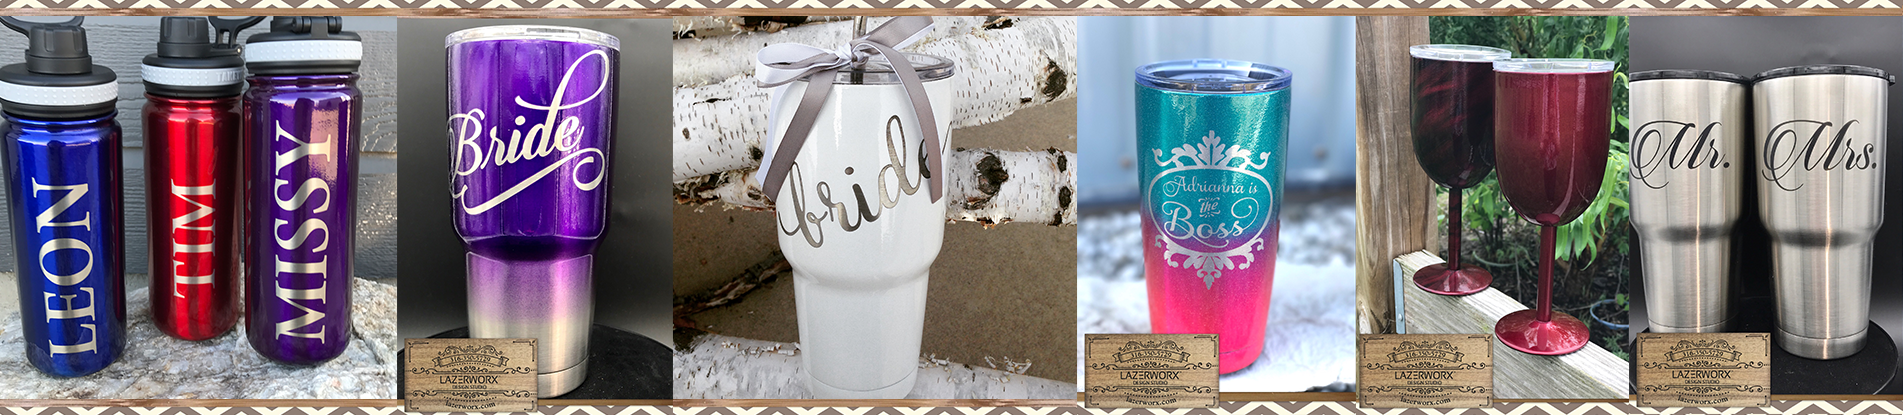 Lazerworx Design Studio offers custom powder coating, laser engraving, and design services for most brands and types of drinkware. Whether you need a personalized YETI Rambler, a custom Ozark Trail 30 oz glitter tumbler, or a large order of unbranded logo tumblers, we are here to help.